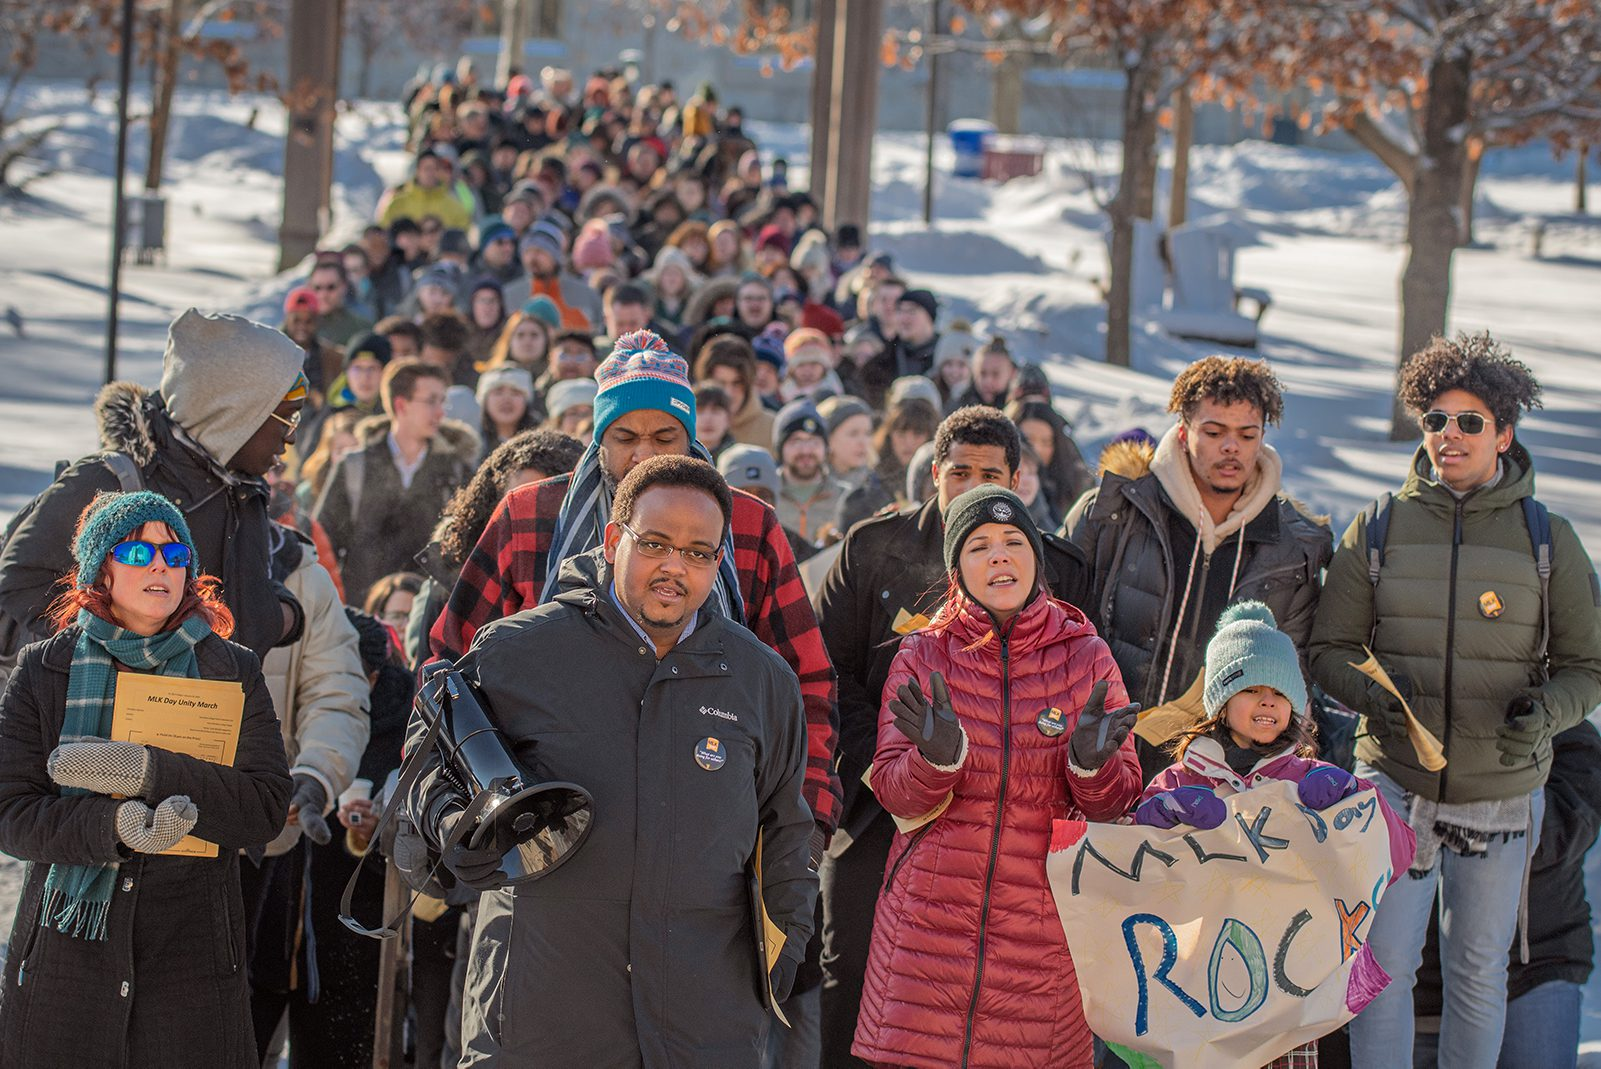 Interim Vice President for Equity and Inclusion María Pabón Gautier (front row, right) marches with members of the St. Olaf Community on Martin Luther King Jr. Day, January 20, 2020